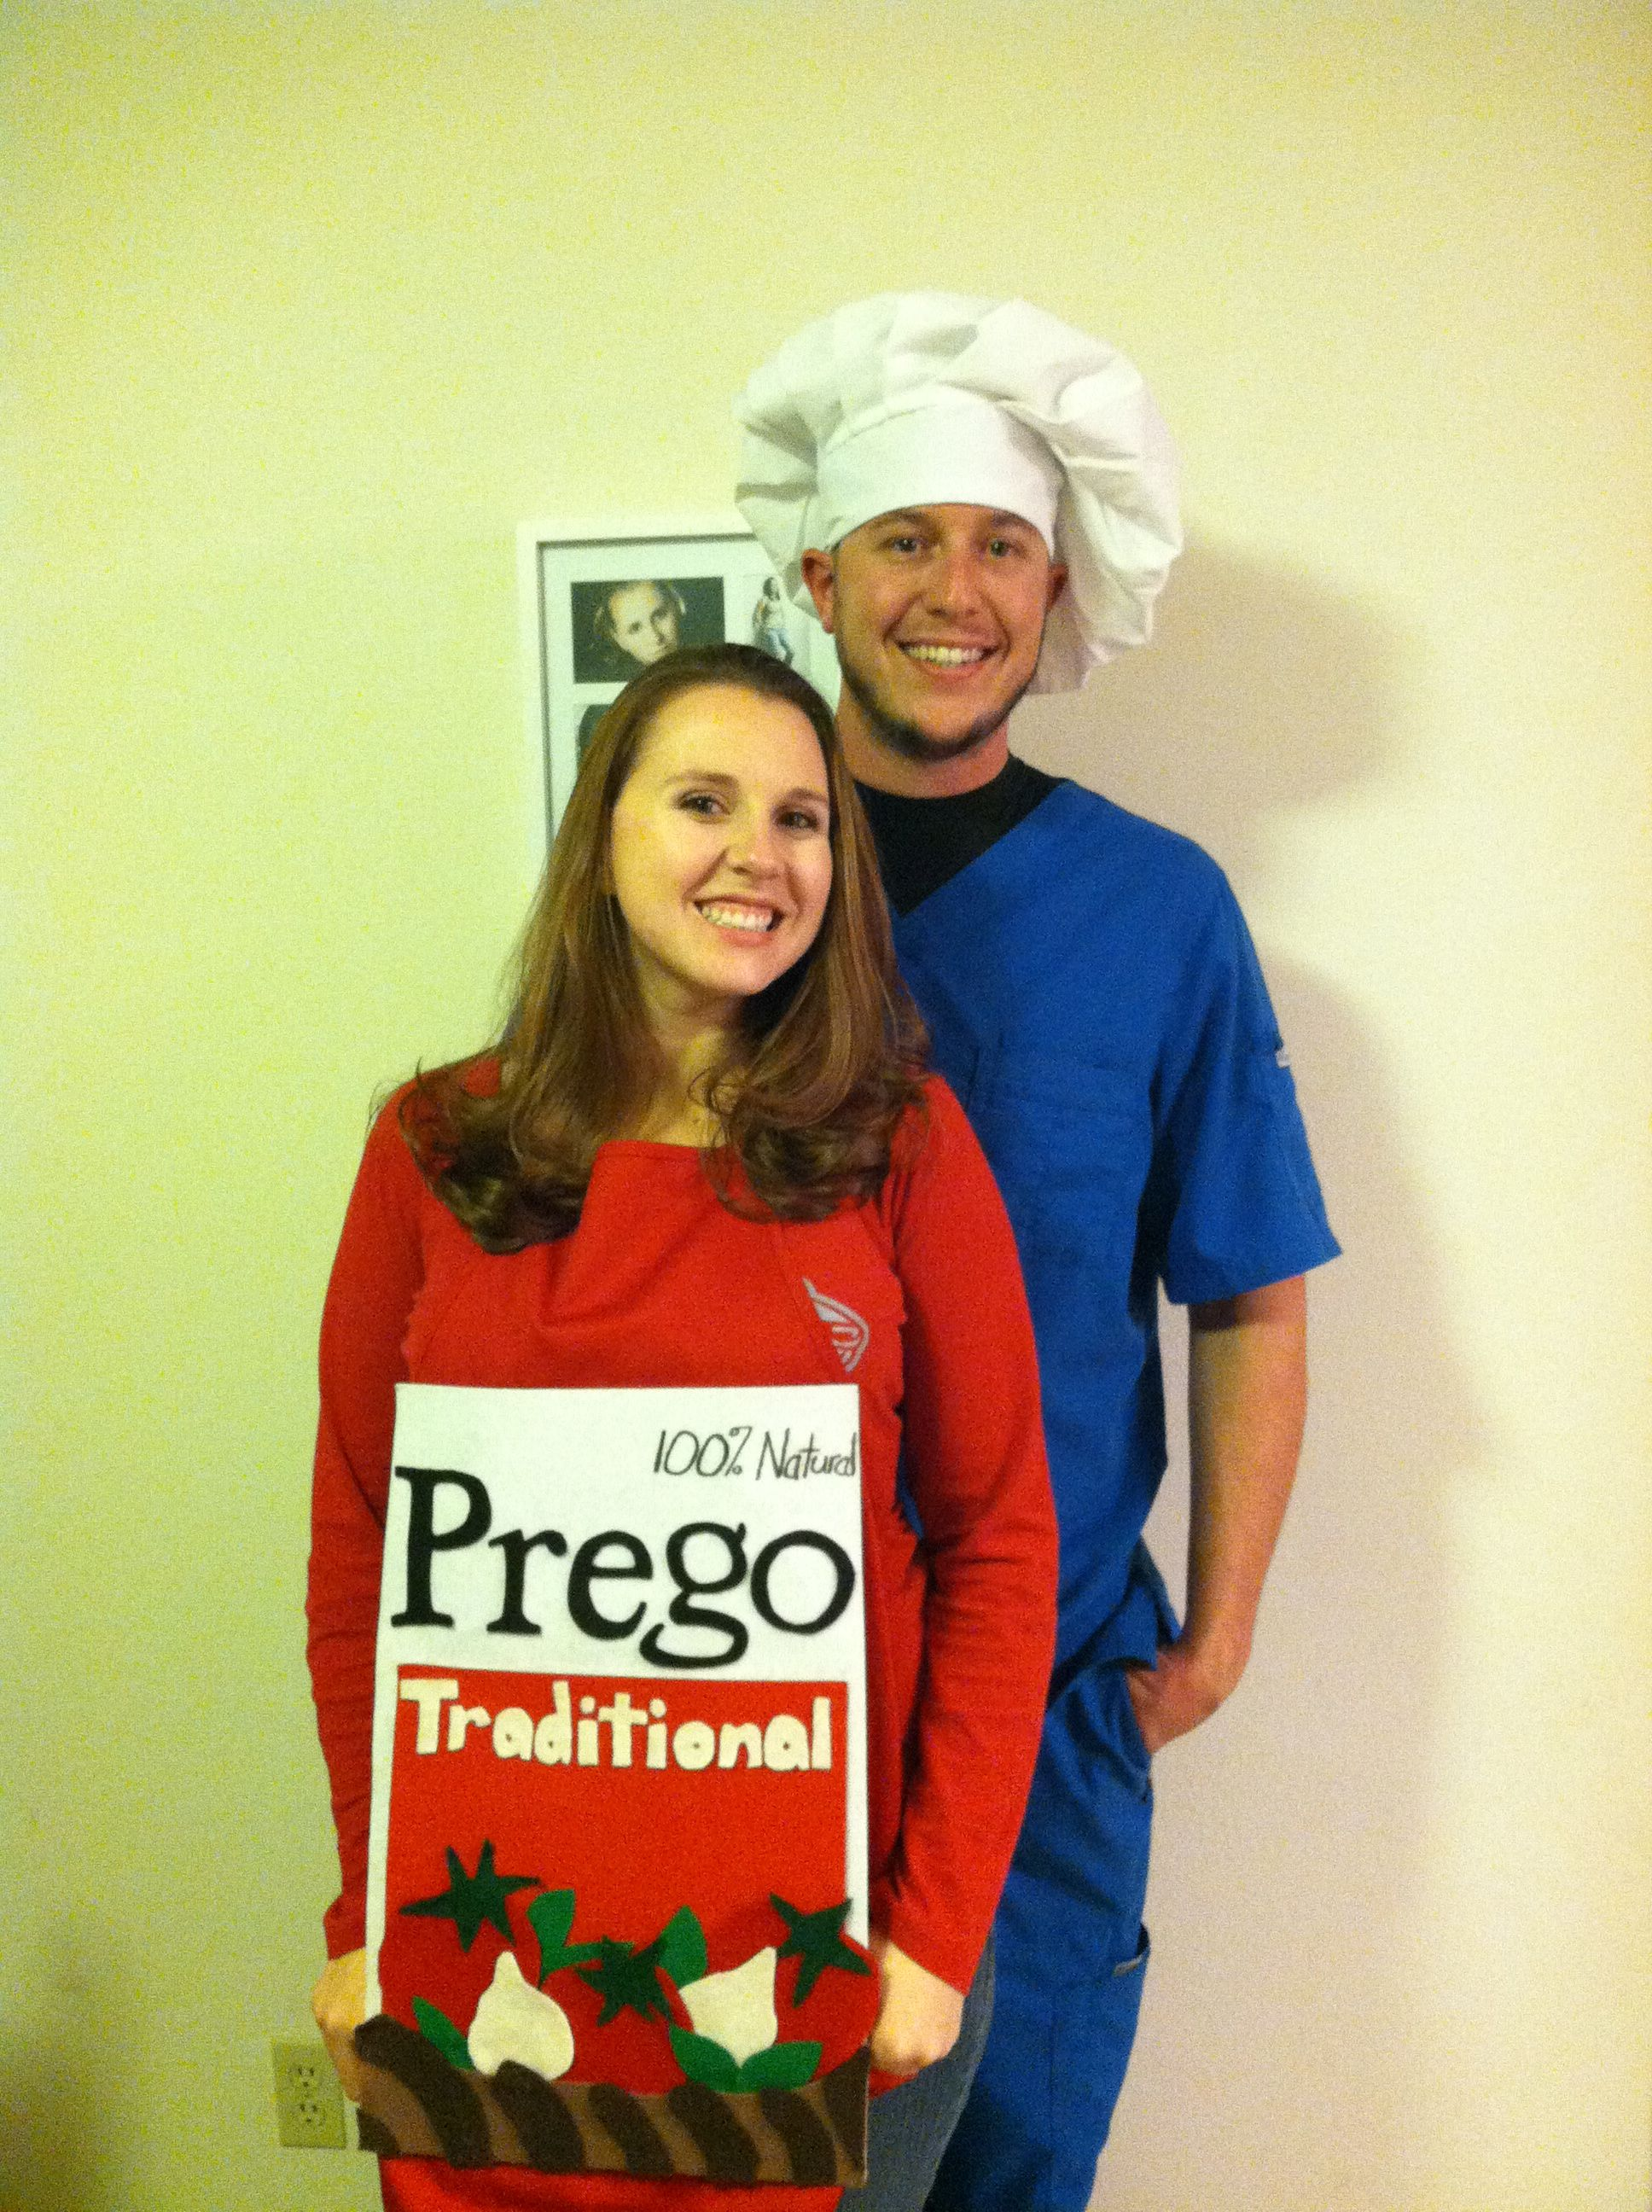 Pregnant Halloween costume couples costumes pregnancy announcement Prego spaghetti costume pregnancy Halloween costumes  sc 1 st  Pinterest & Announcing our